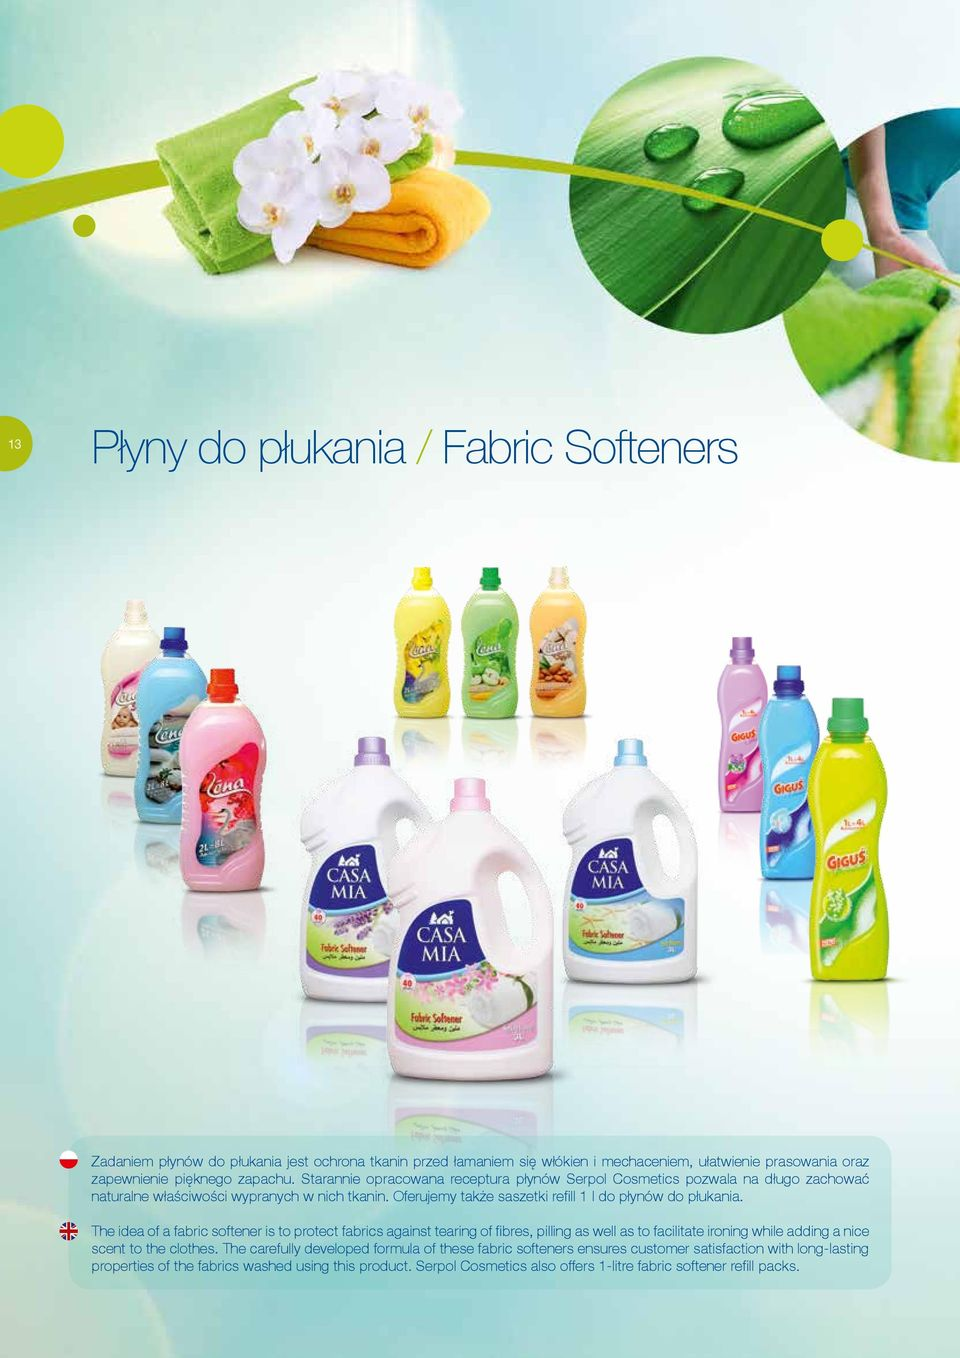 The idea of a fabric softener is to protect fabrics against tearing of fibres, pilling as well as to facilitate ironing while adding a nice scent to the clothes.